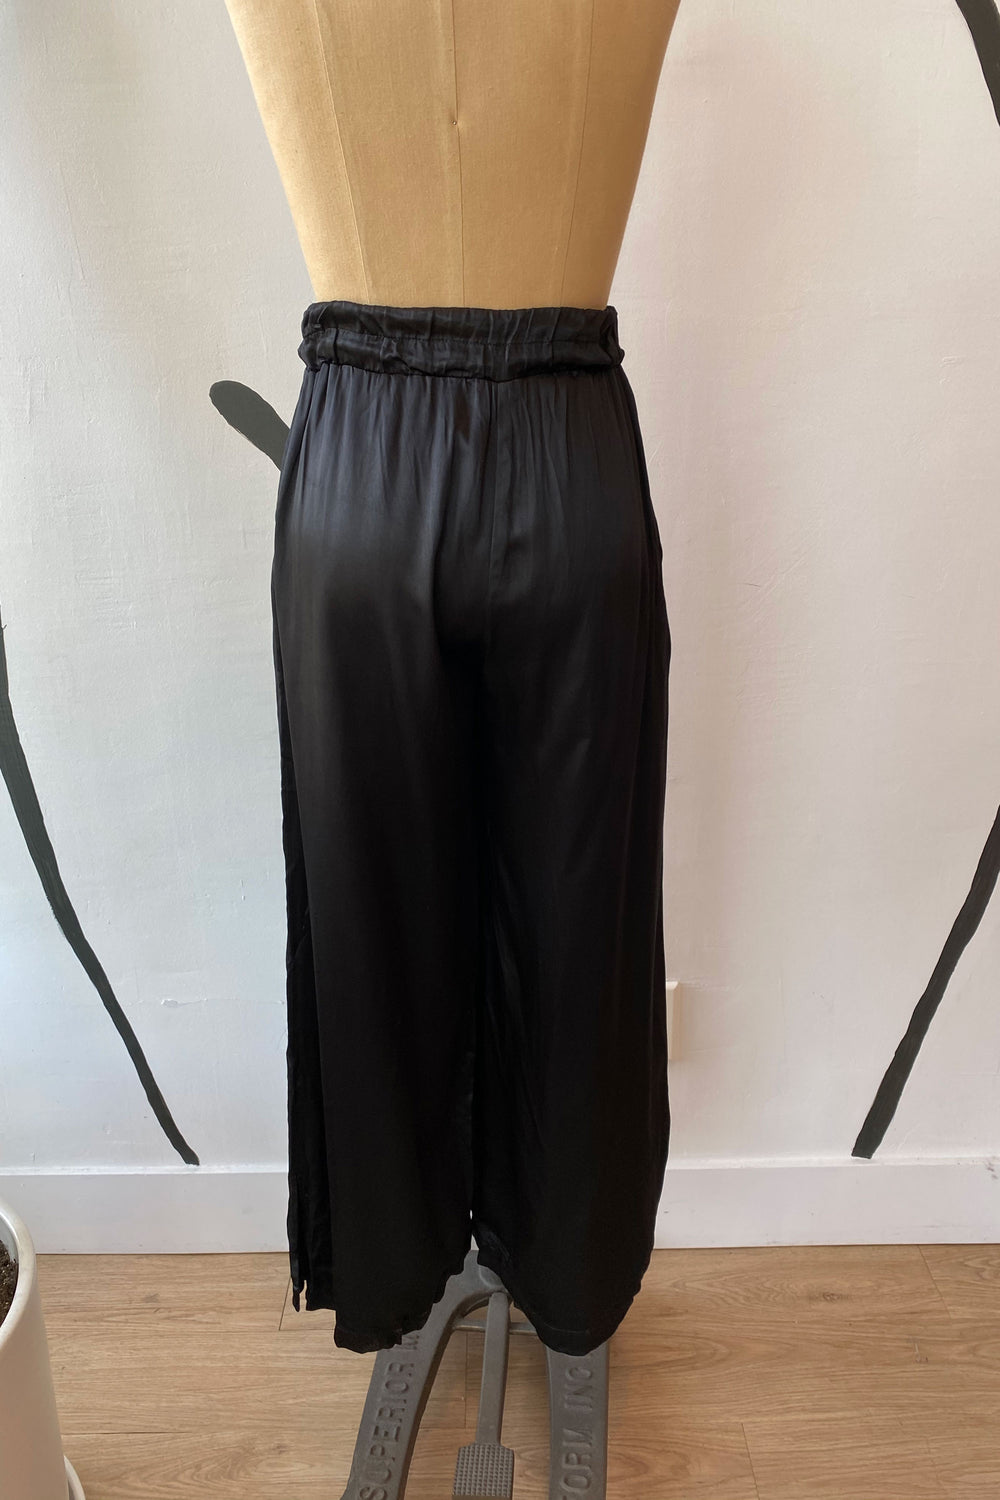 Sample Sale Norah Pants in Shiny Black - Whimsy & Row